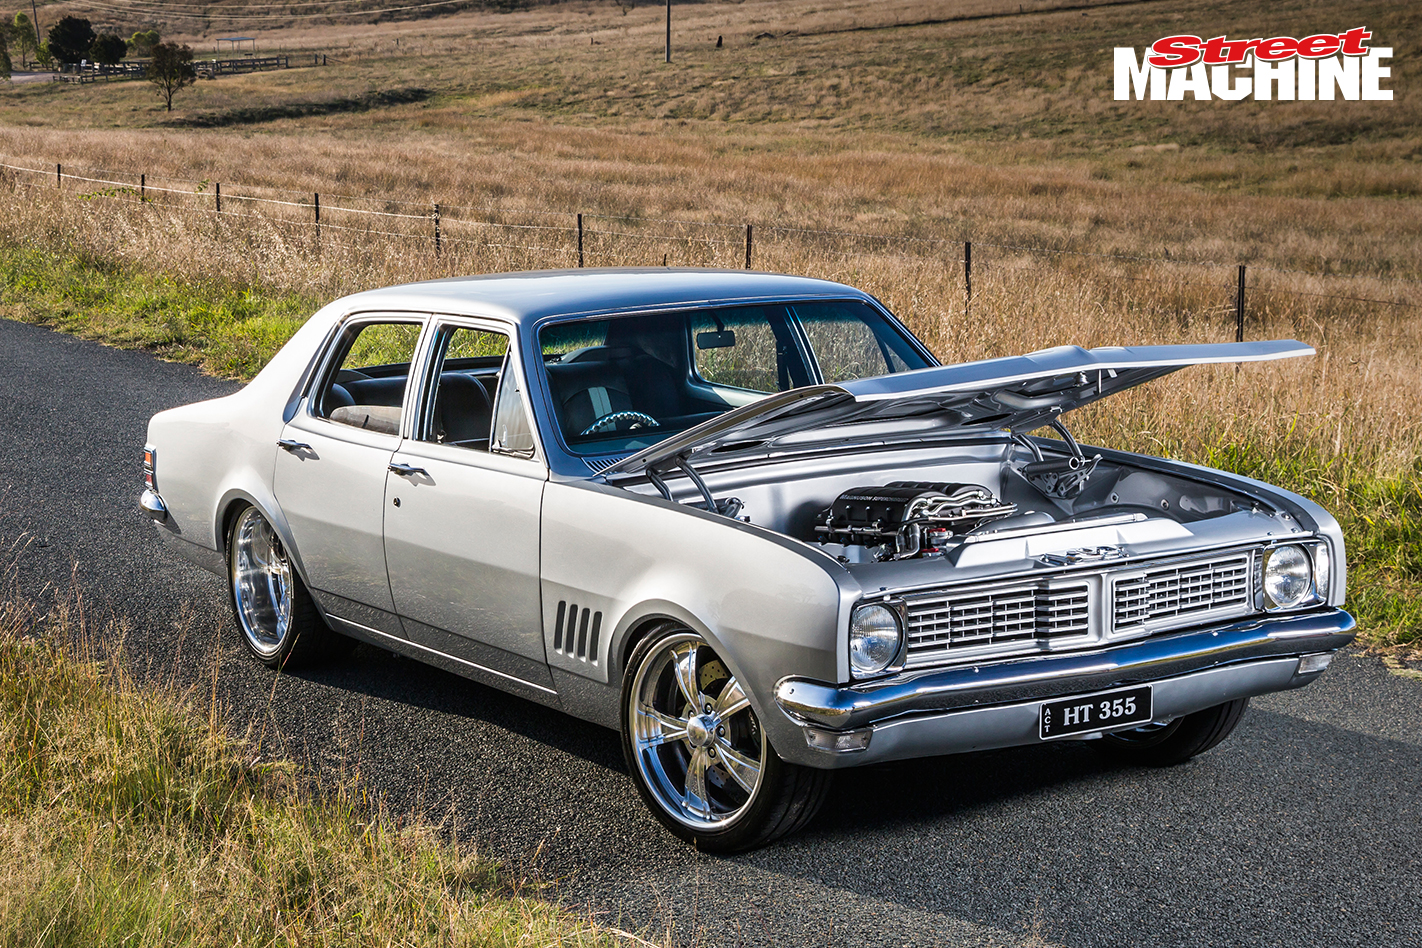 HT Holden Sedan 427 Supercharged